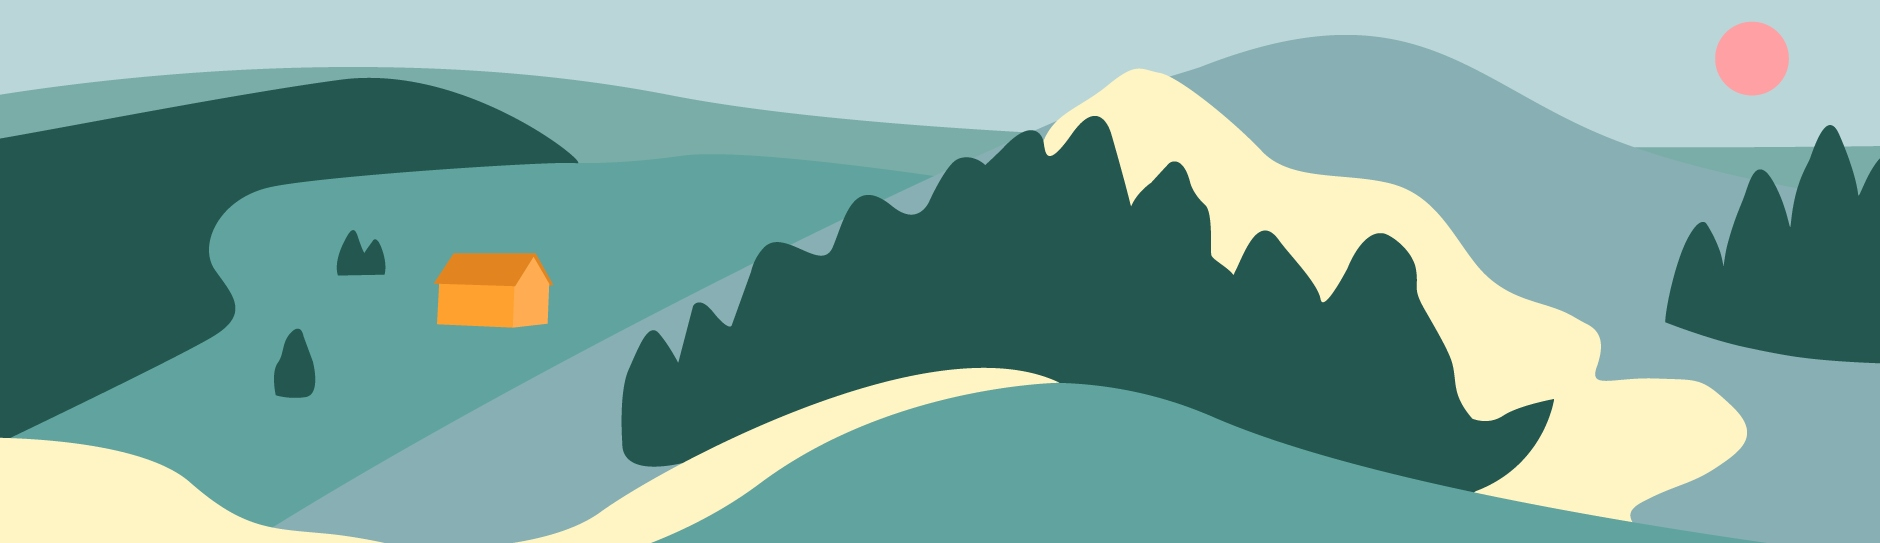 Illustration of a mountain with a small house